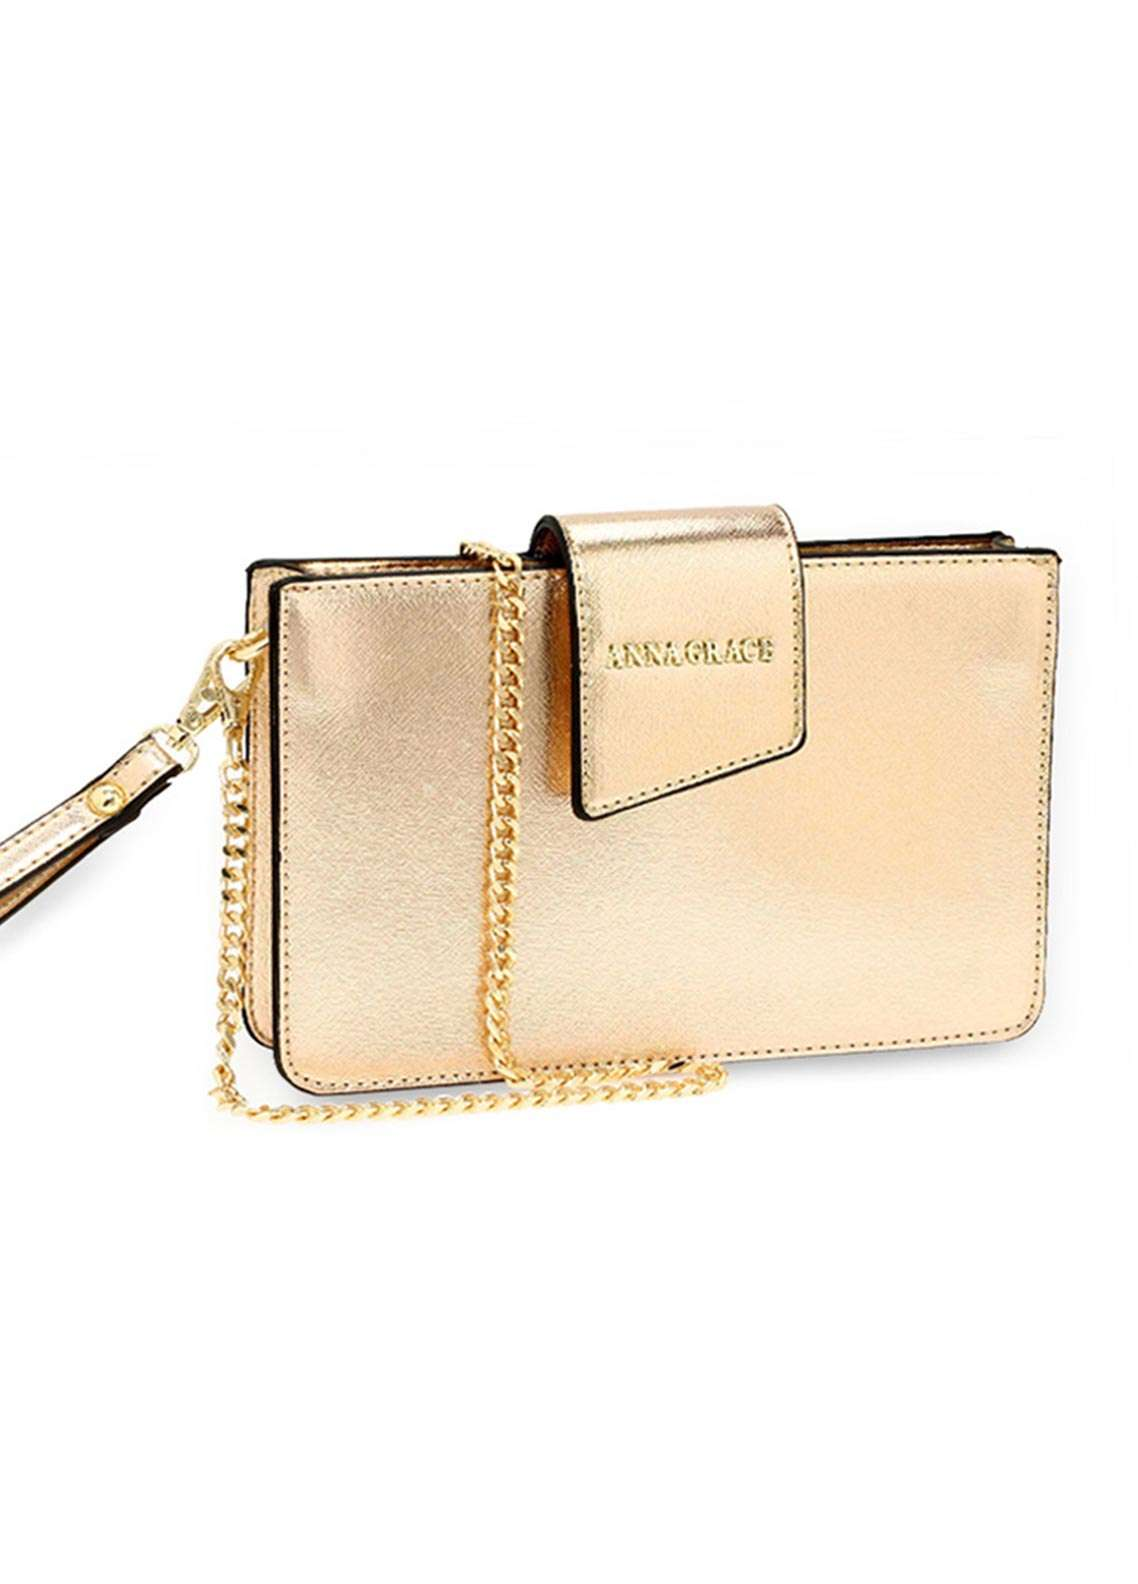 Anna Grace London Faux Leather Crossbody  Bags  for Women  Gold with Rugged Texture